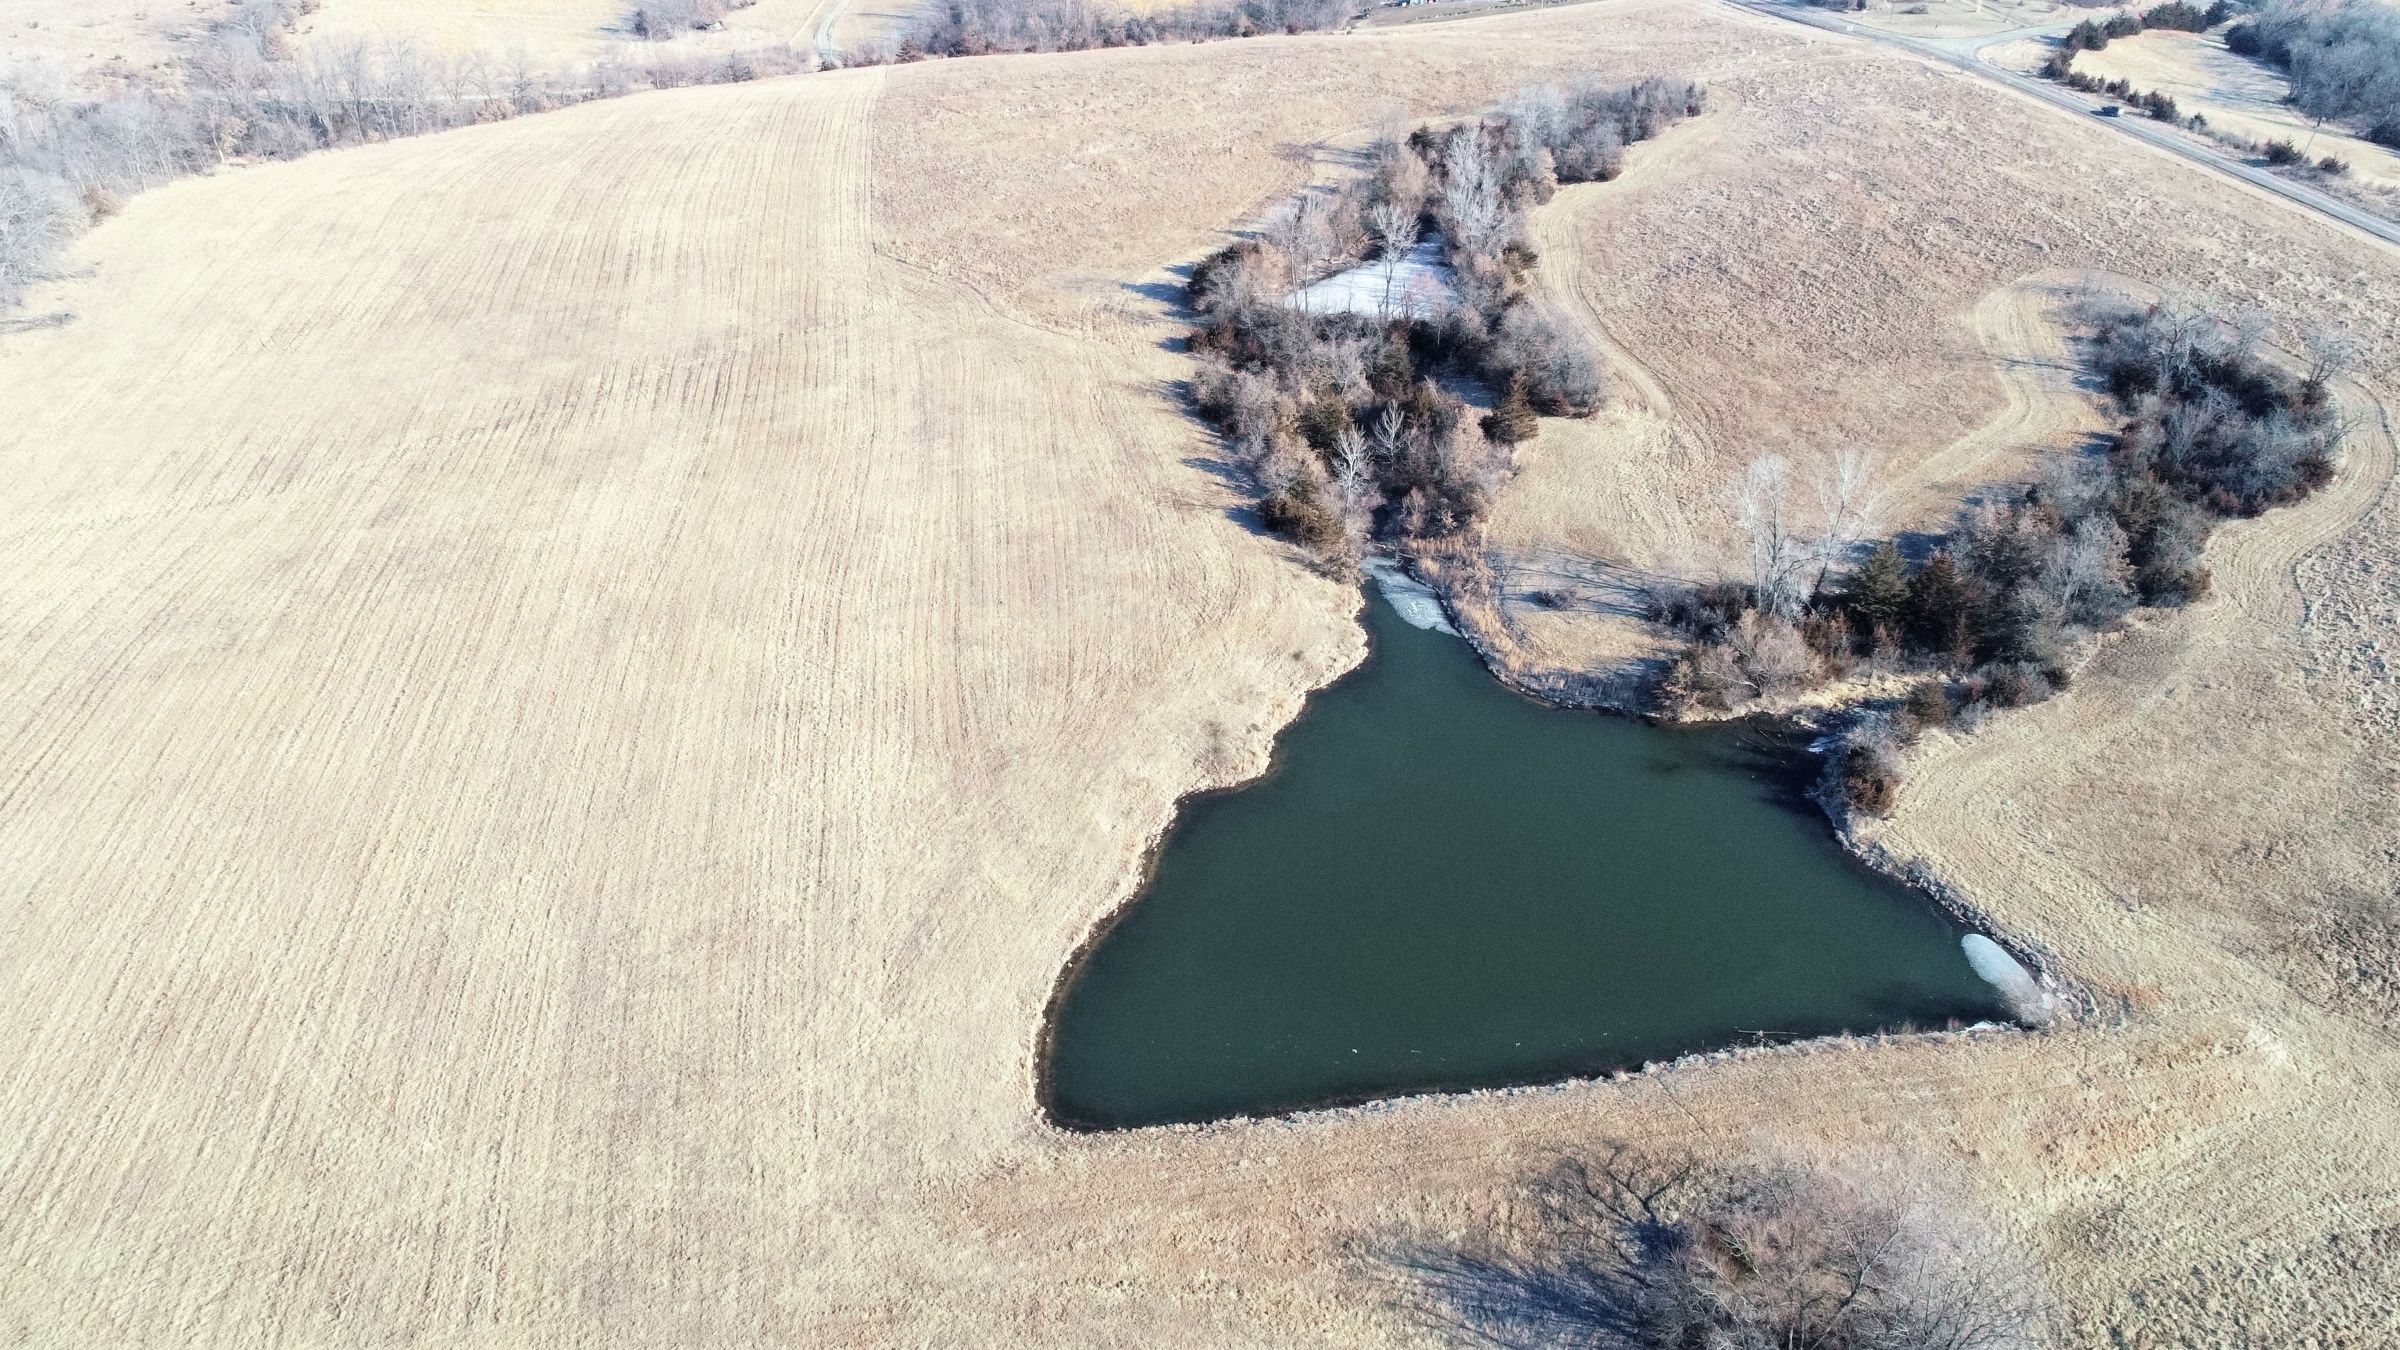 land-gentry-county-missouri-40-acres-listing-number-15397-1-2021-03-09-163947.jpg